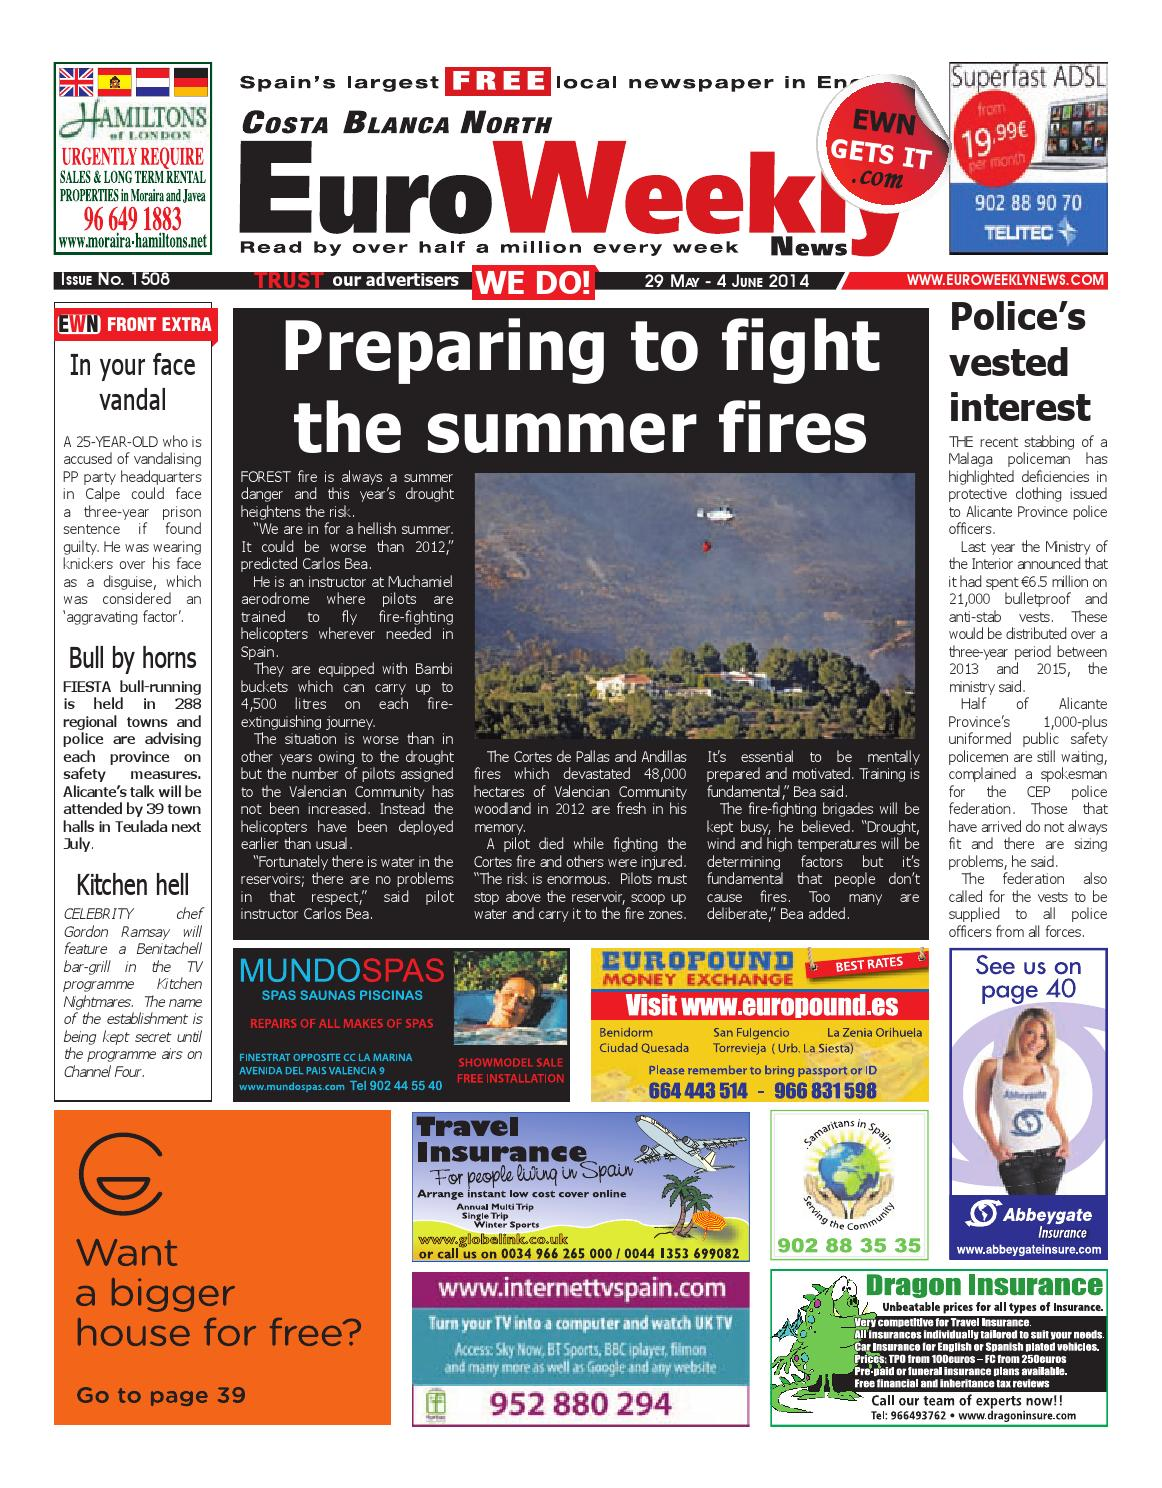 Euro Weekly News Costa Blanca North 29 May 4 June 2014 Issue  # Muebles Gisbert Cornella